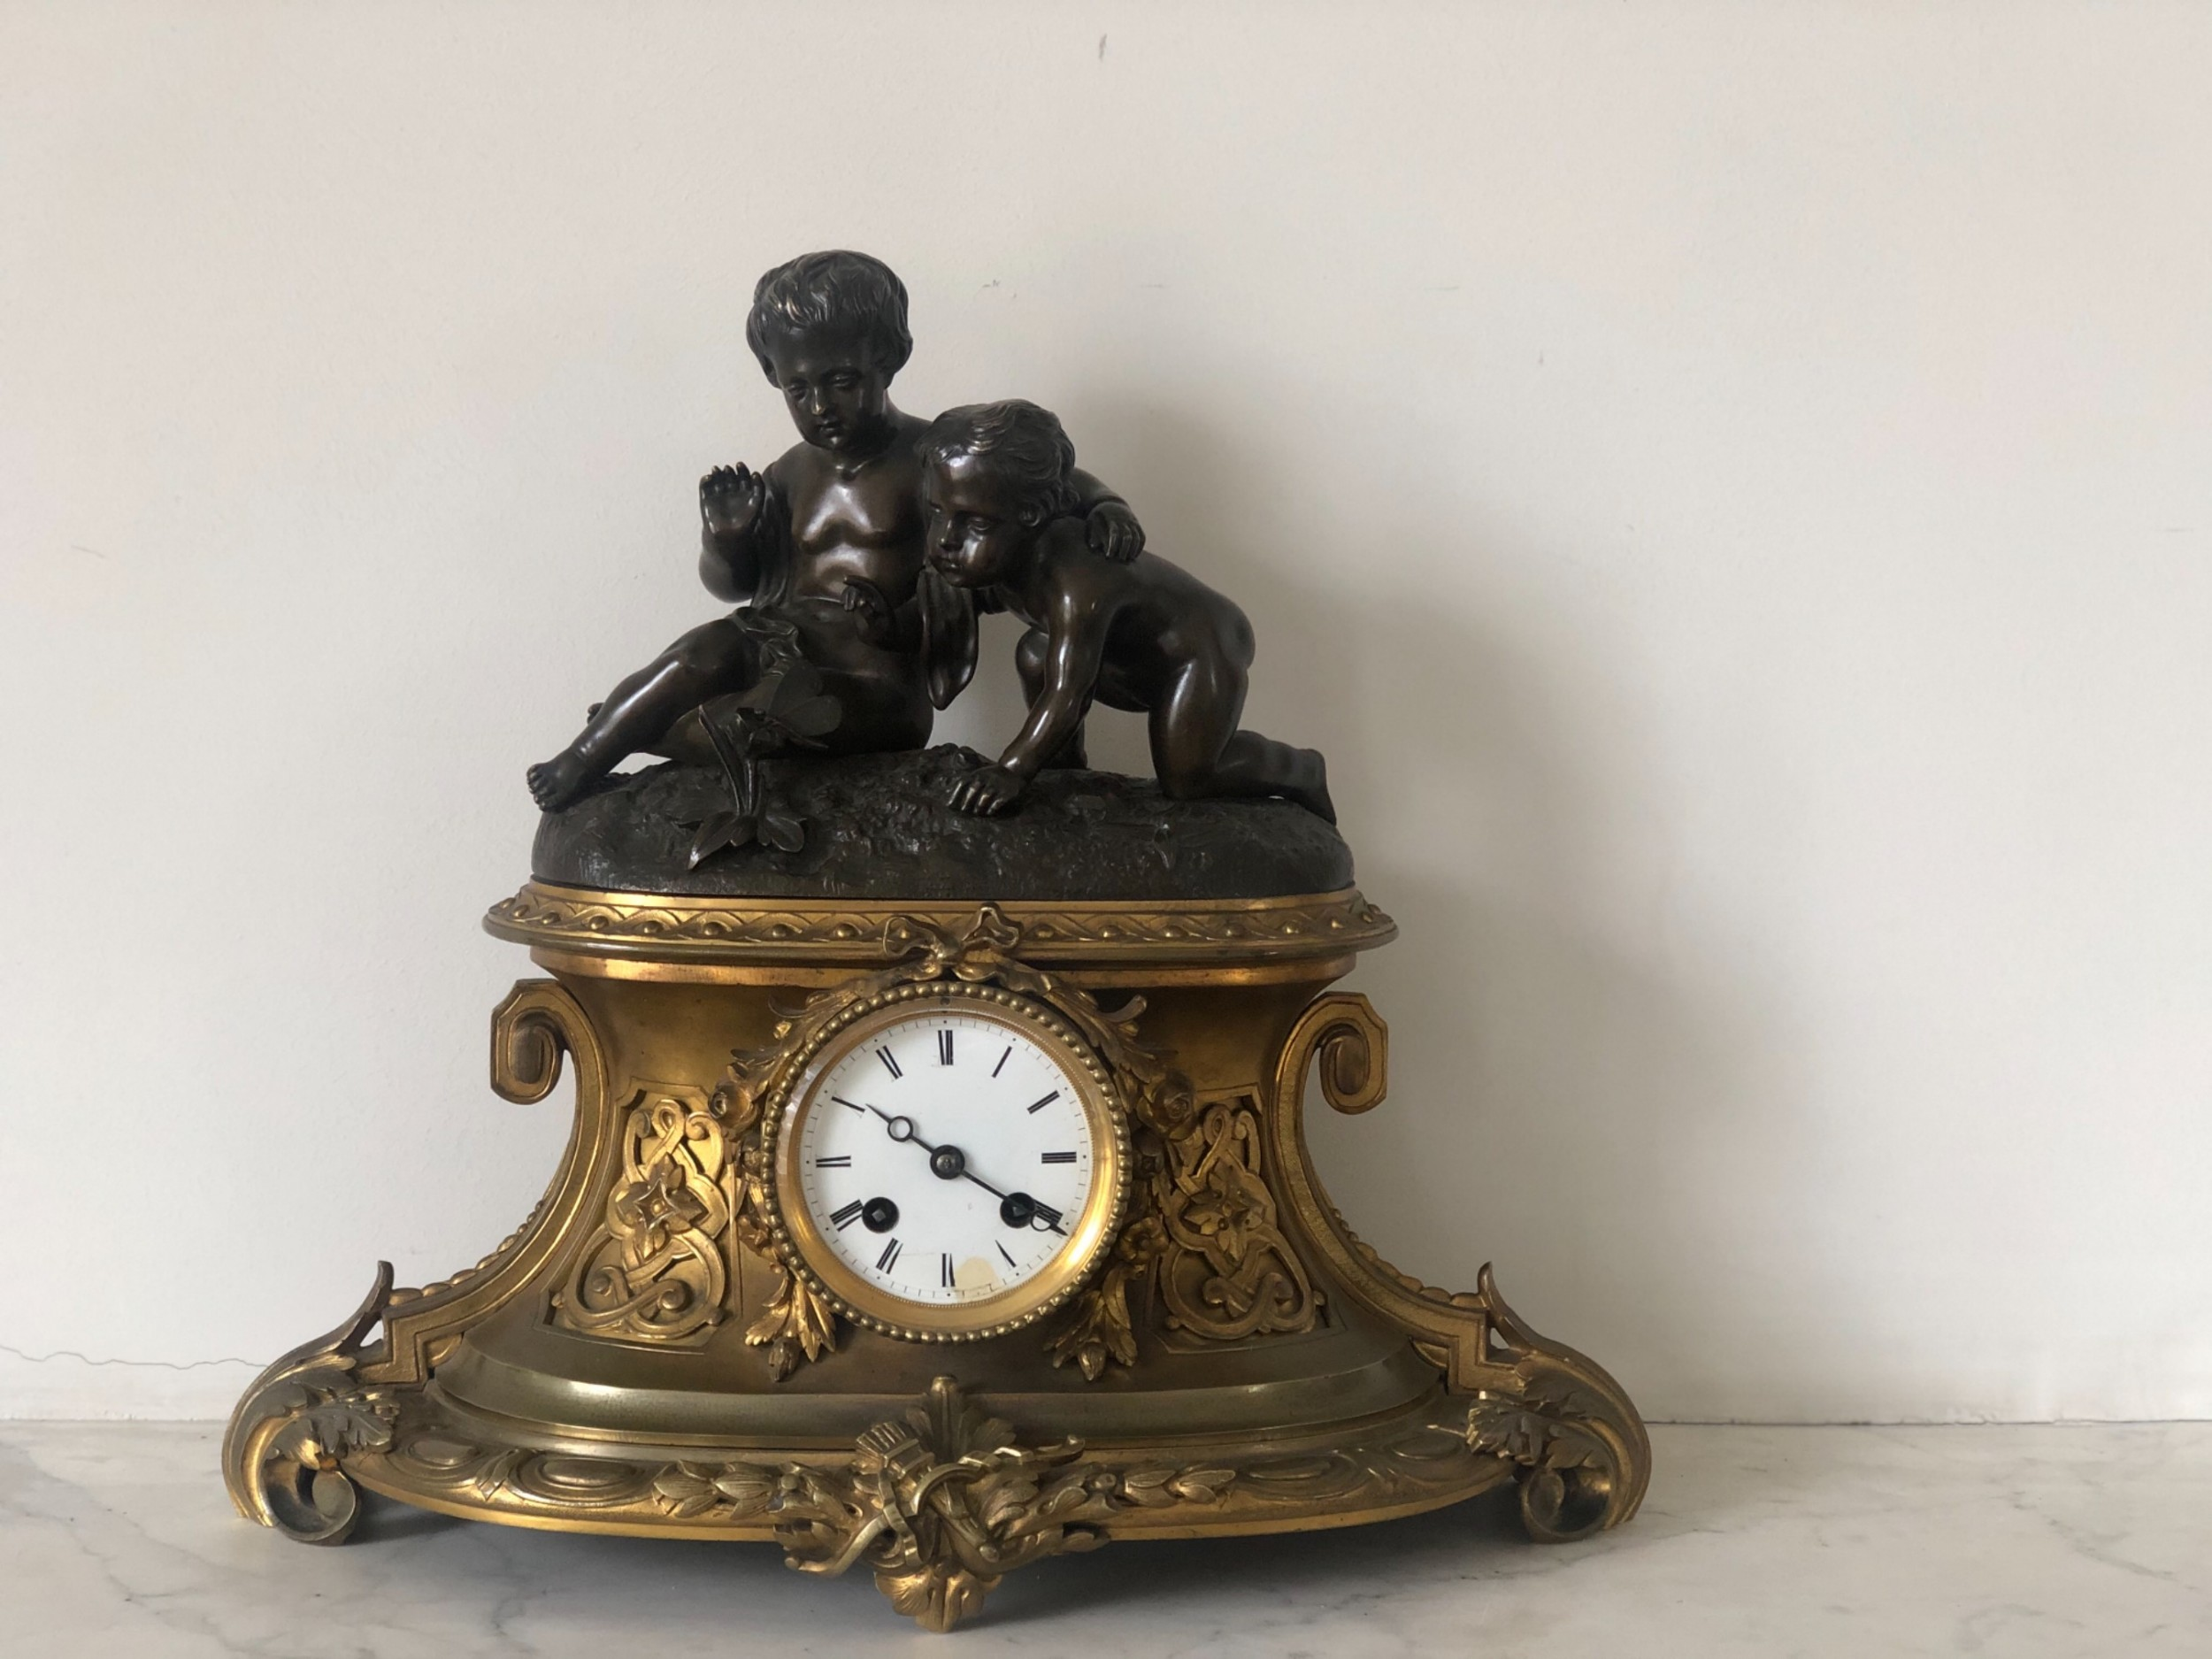 a 19th century french bronze and ormolu mounted mantel clock